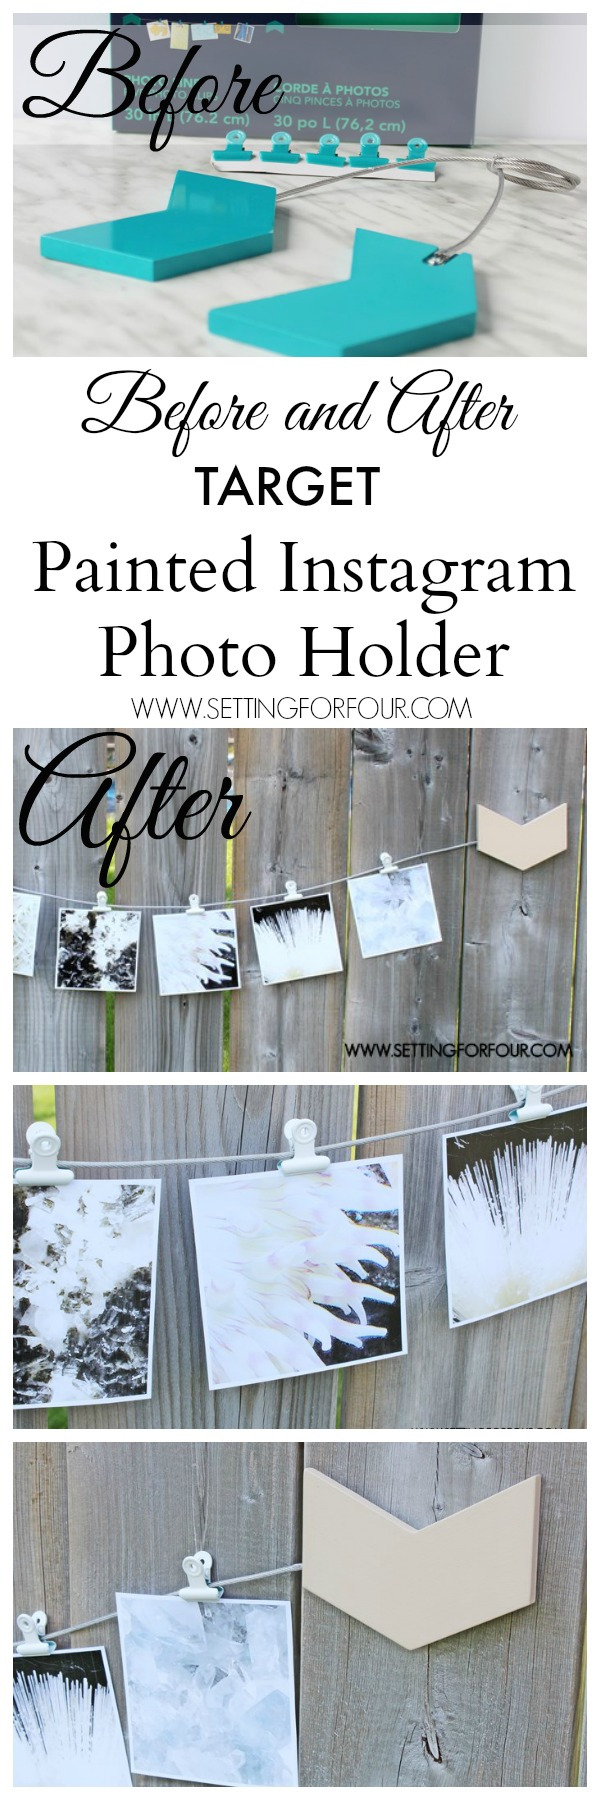 DIY Dorm Room Decor Idea! Make this Easy and Quick Painted Instagram Photo Holder for a dorm room or your home. Hang your Instagram photos and old Polaroids from it for beautiful wall decor!